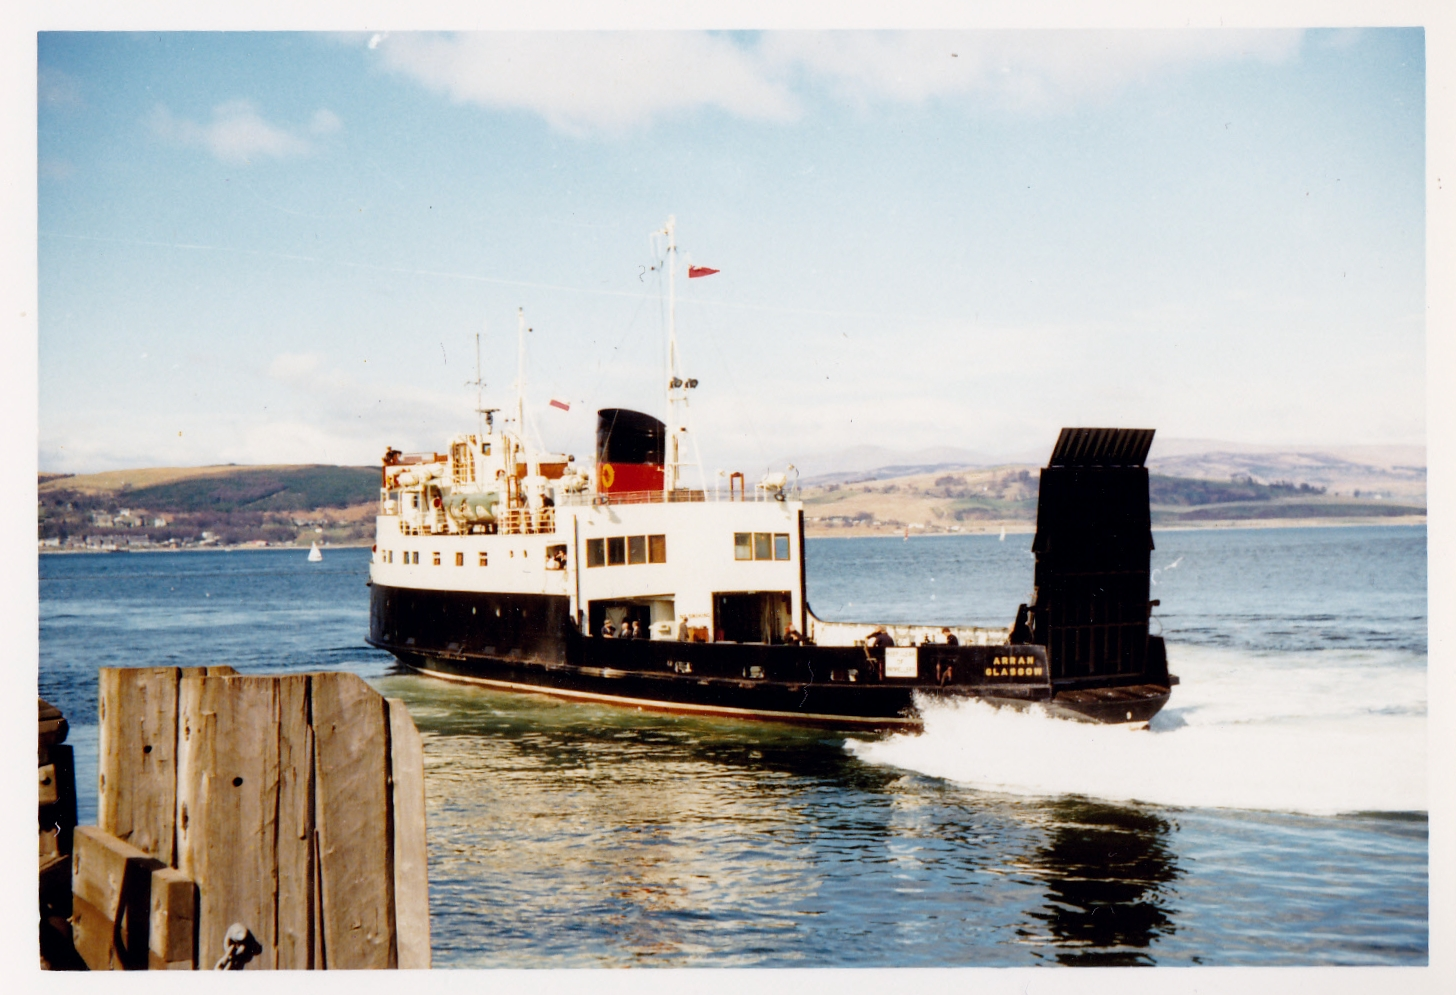 Arran leaving Gourock (Jim Aikman Smith)